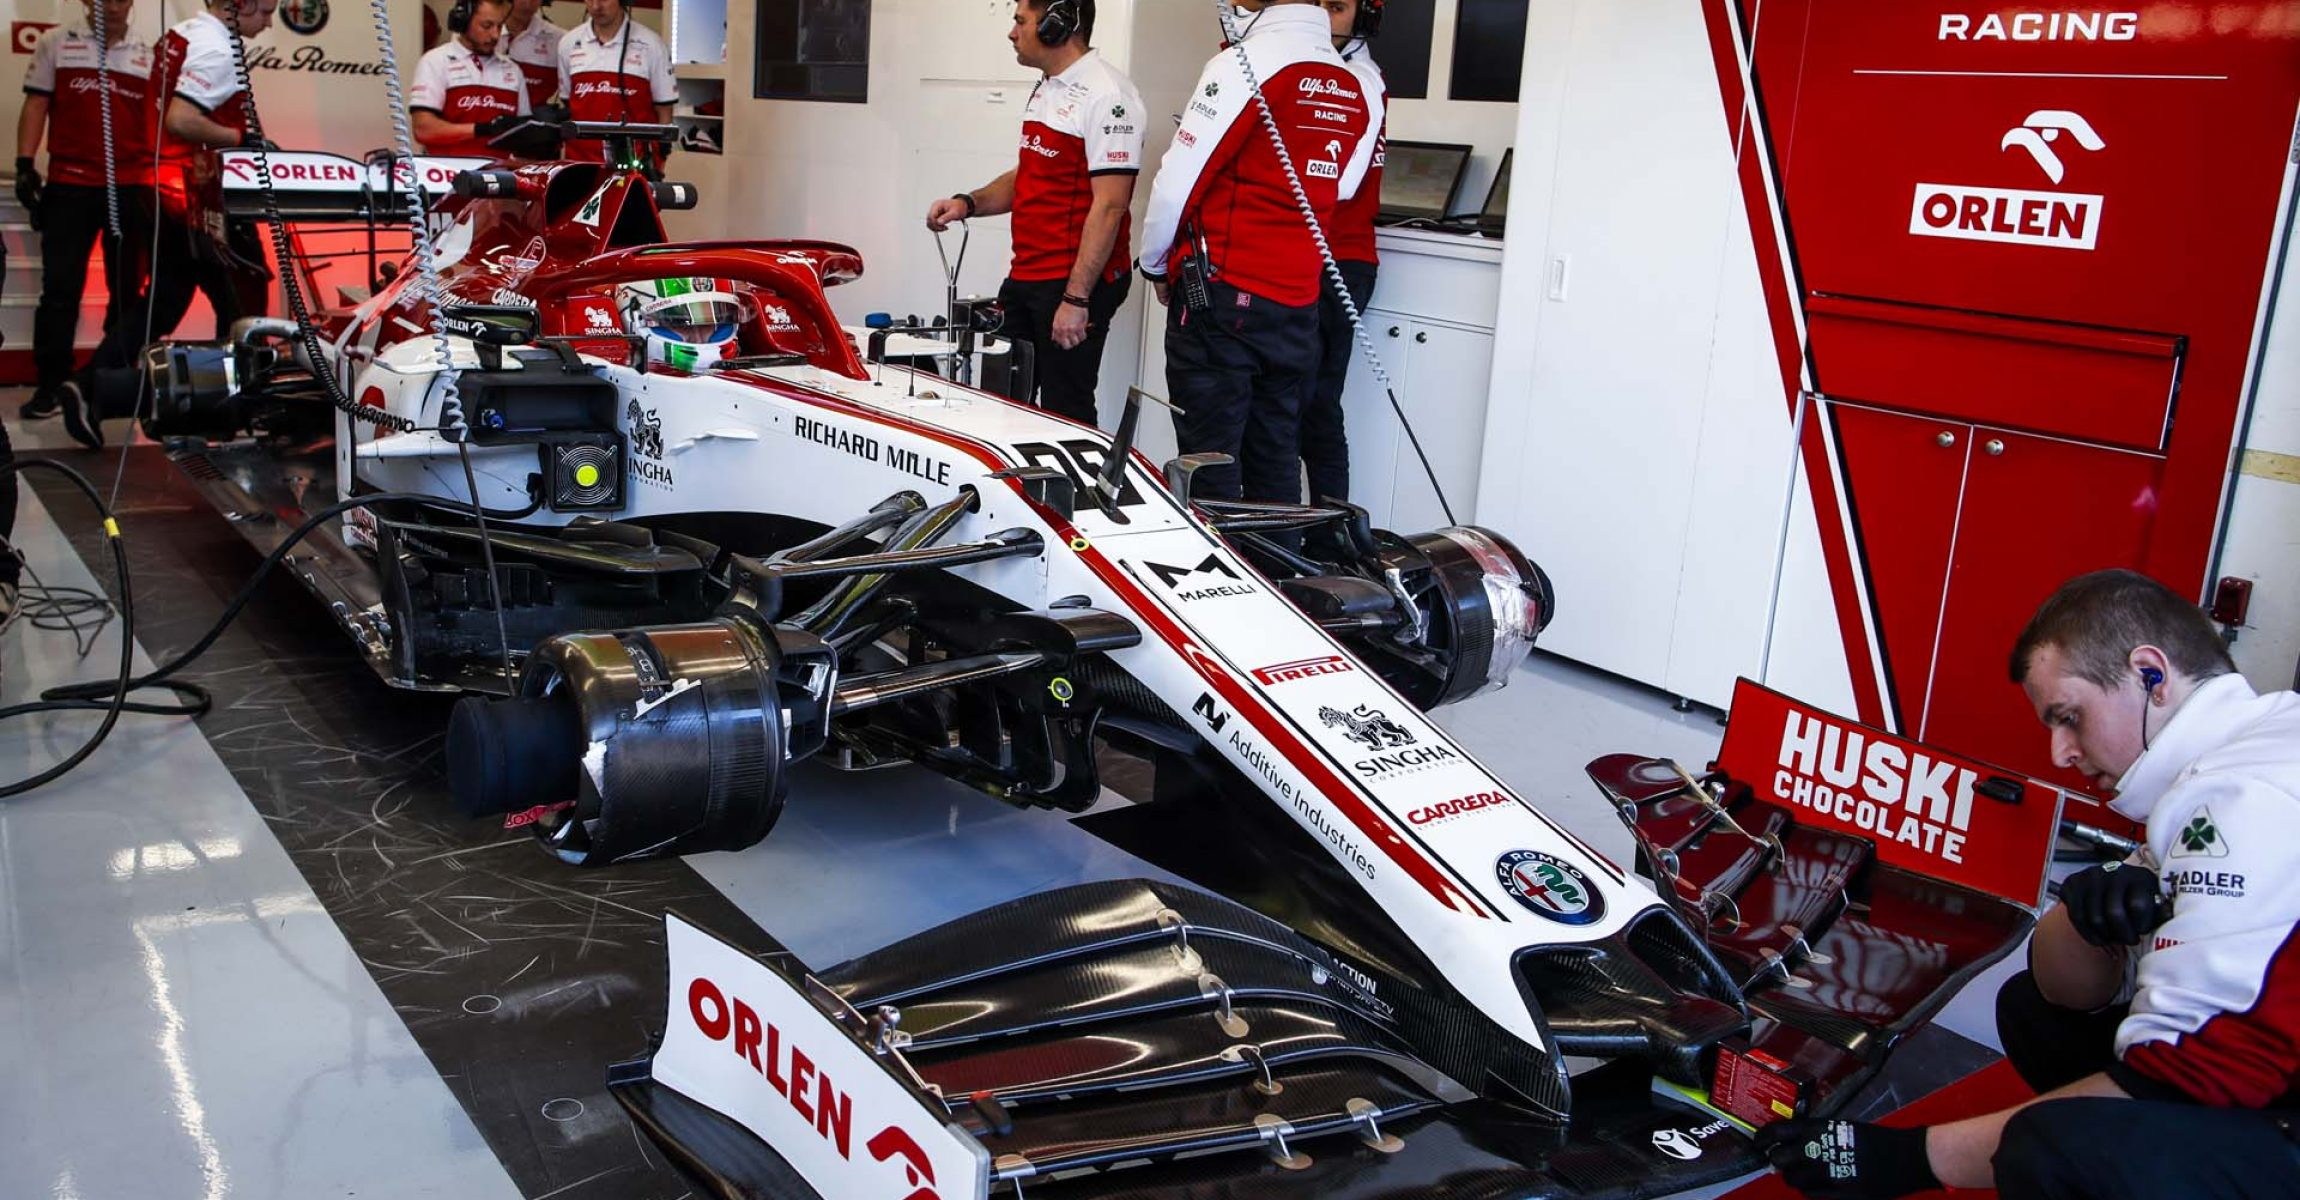 GIOVINAZZI Antonio (ita), Alfa Romeo Racing C39, garage, box, during the second session of the Formula 1 Pre-season testing 2020 from February 26 to 28, 2020 on the Circuit de Barcelona-Catalunya, in Montmelo, Barcelona, Spain - Photo Florent Gooden / DPPI